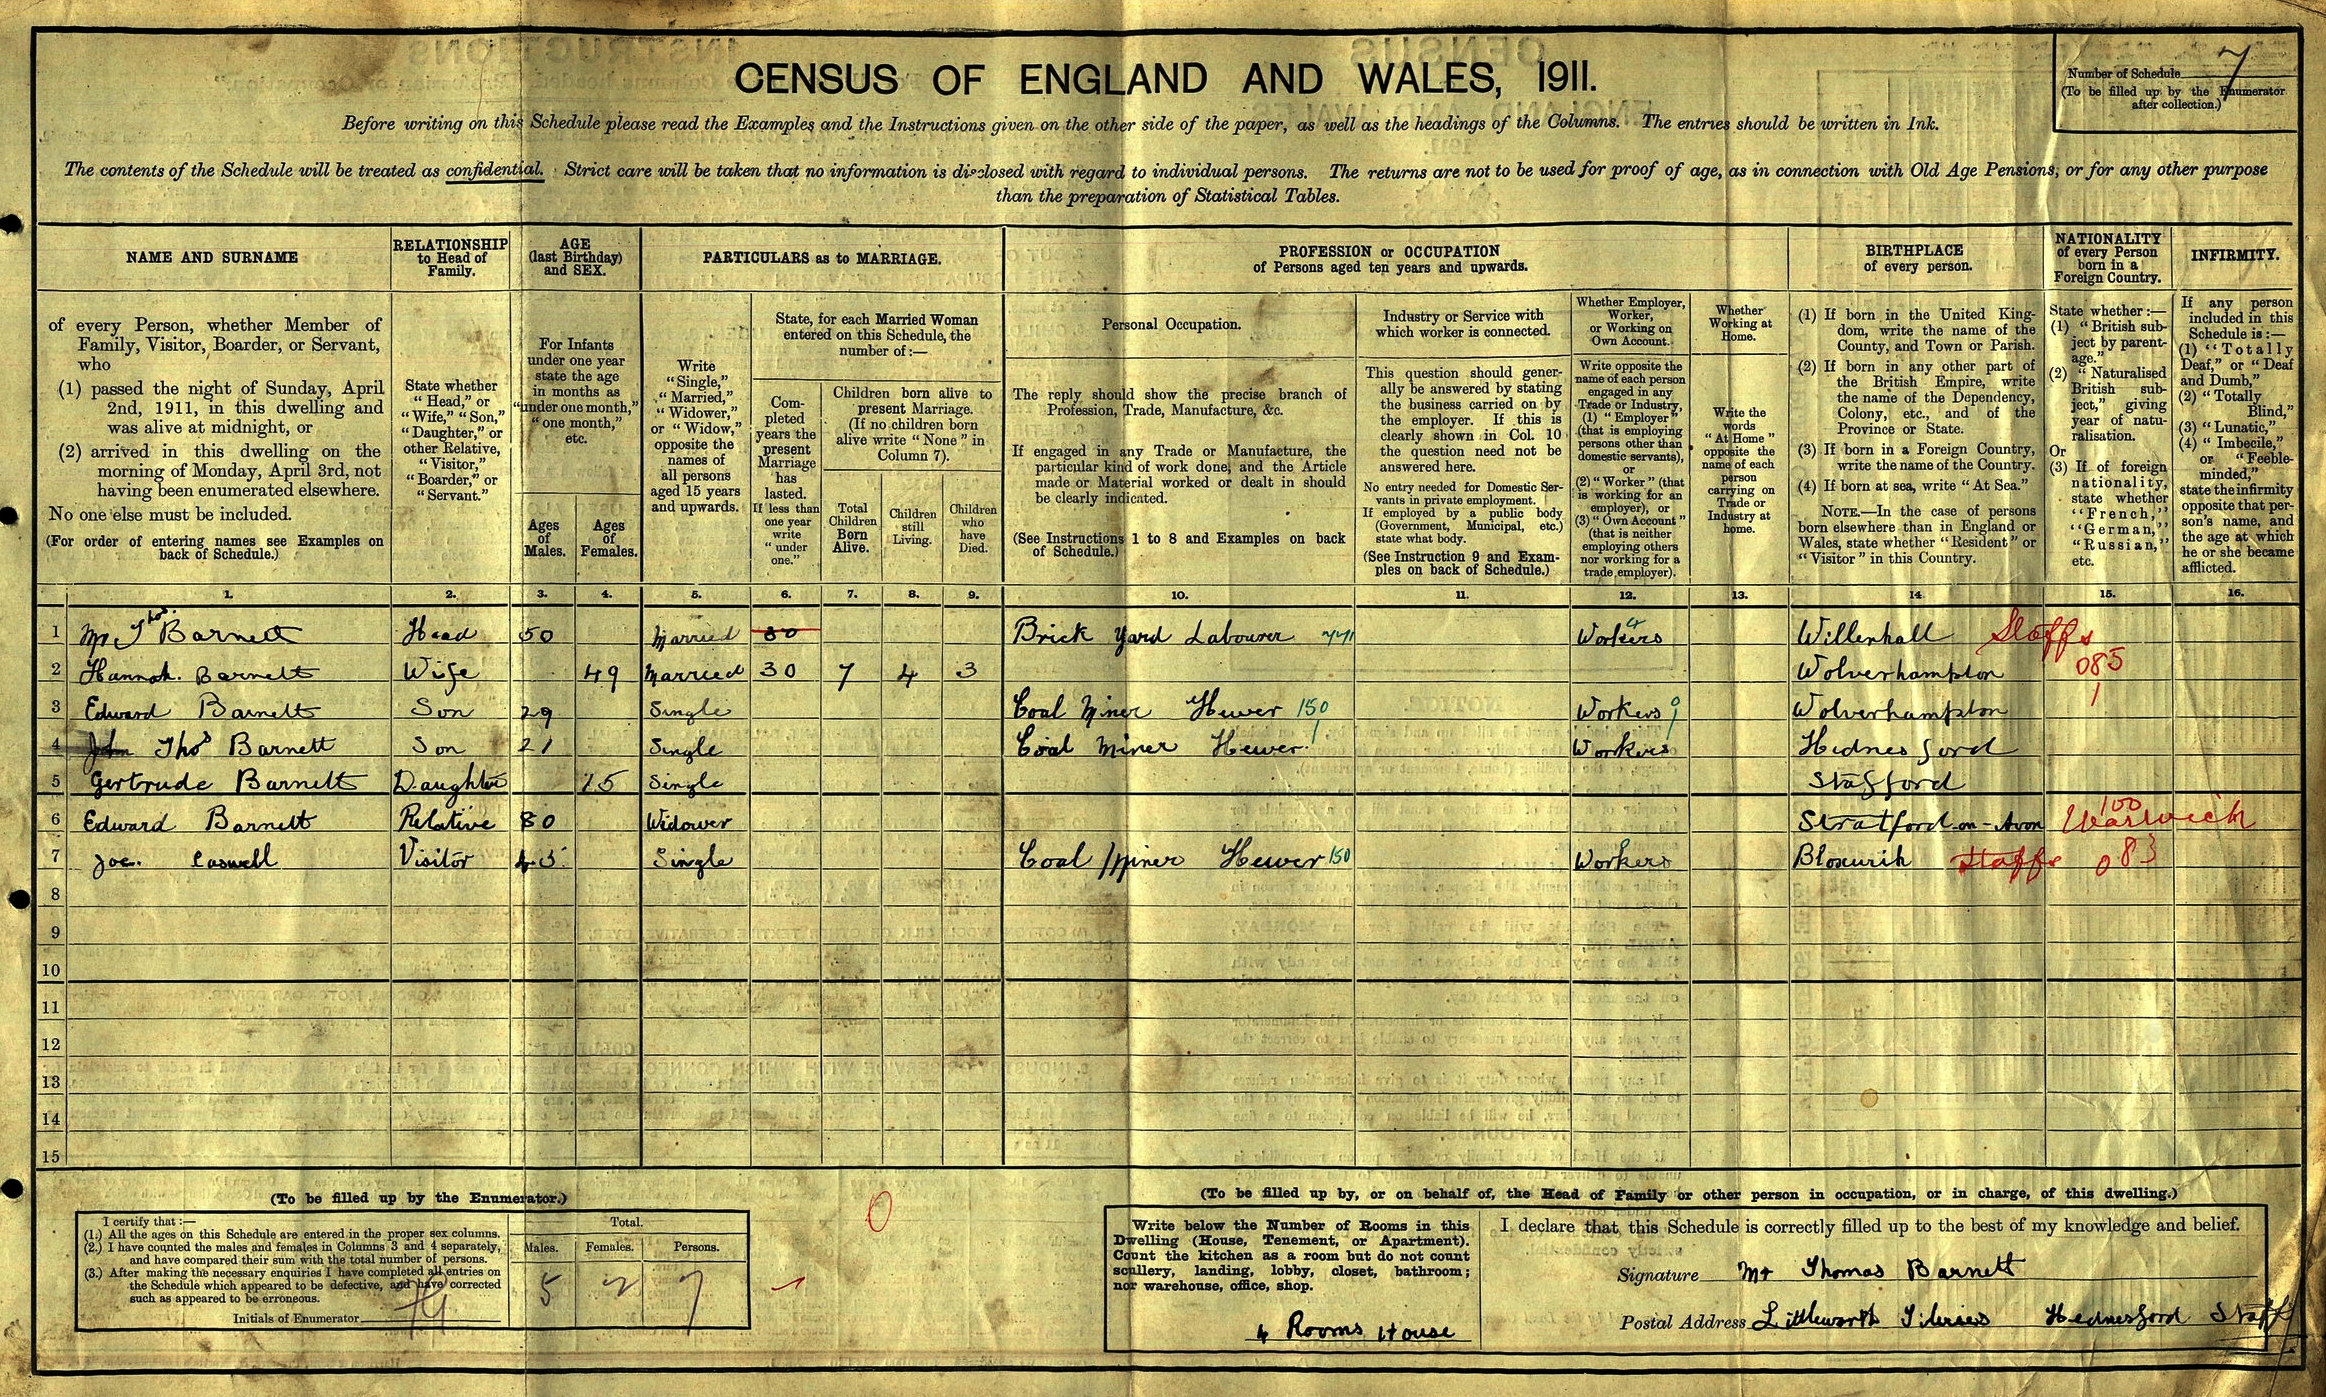 Extract from the 1911 census for the family of Thomas and Hannah Barnett